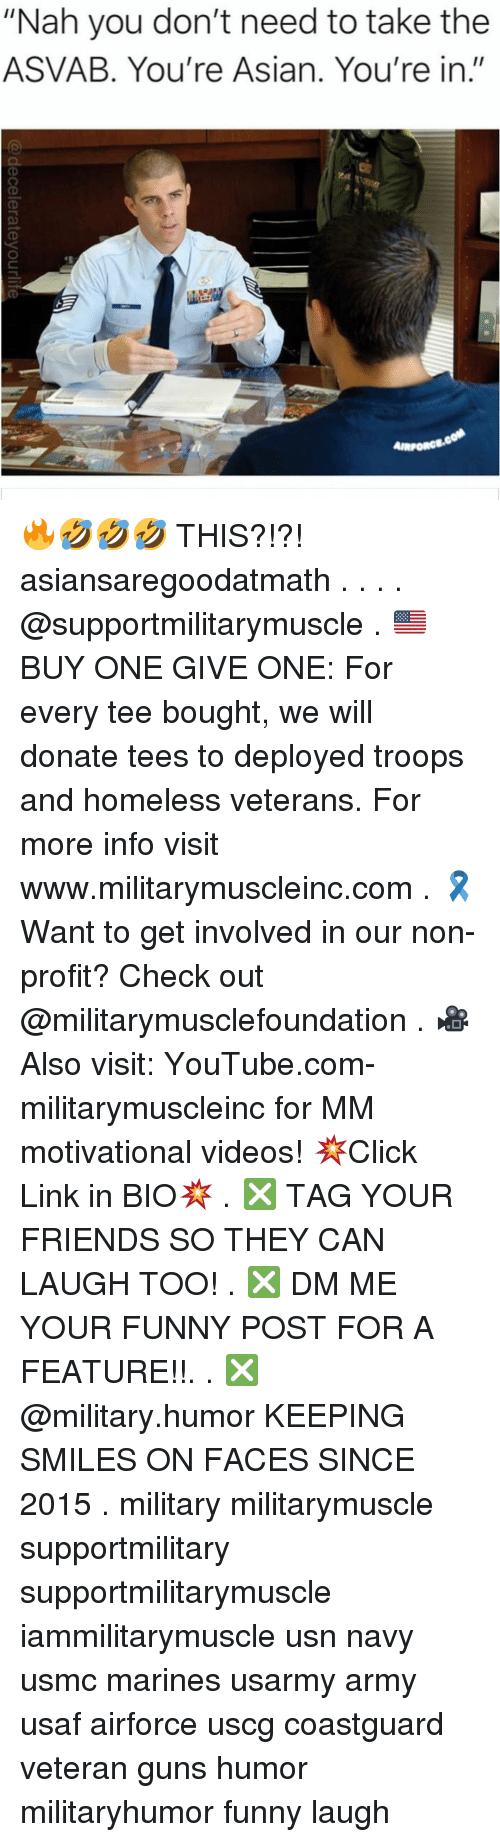 """Asian, Friends, and Funny: """"Nah you don't need to take the  ASVAB. You're Asian. You're in.""""  AIRPORC 🔥🤣🤣🤣 THIS?!?! asiansaregoodatmath . . . . @supportmilitarymuscle . 🇺🇸BUY ONE GIVE ONE: For every tee bought, we will donate tees to deployed troops and homeless veterans. For more info visit www.militarymuscleinc.com . 🎗Want to get involved in our non-profit? Check out @militarymusclefoundation . 🎥Also visit: YouTube.com-militarymuscleinc for MM motivational videos! 💥Click Link in BIO💥 . ❎ TAG YOUR FRIENDS SO THEY CAN LAUGH TOO! . ❎ DM ME YOUR FUNNY POST FOR A FEATURE!!. . ❎ @military.humor KEEPING SMILES ON FACES SINCE 2015 . military militarymuscle supportmilitary supportmilitarymuscle iammilitarymuscle usn navy usmc marines usarmy army usaf airforce uscg coastguard veteran guns humor militaryhumor funny laugh"""